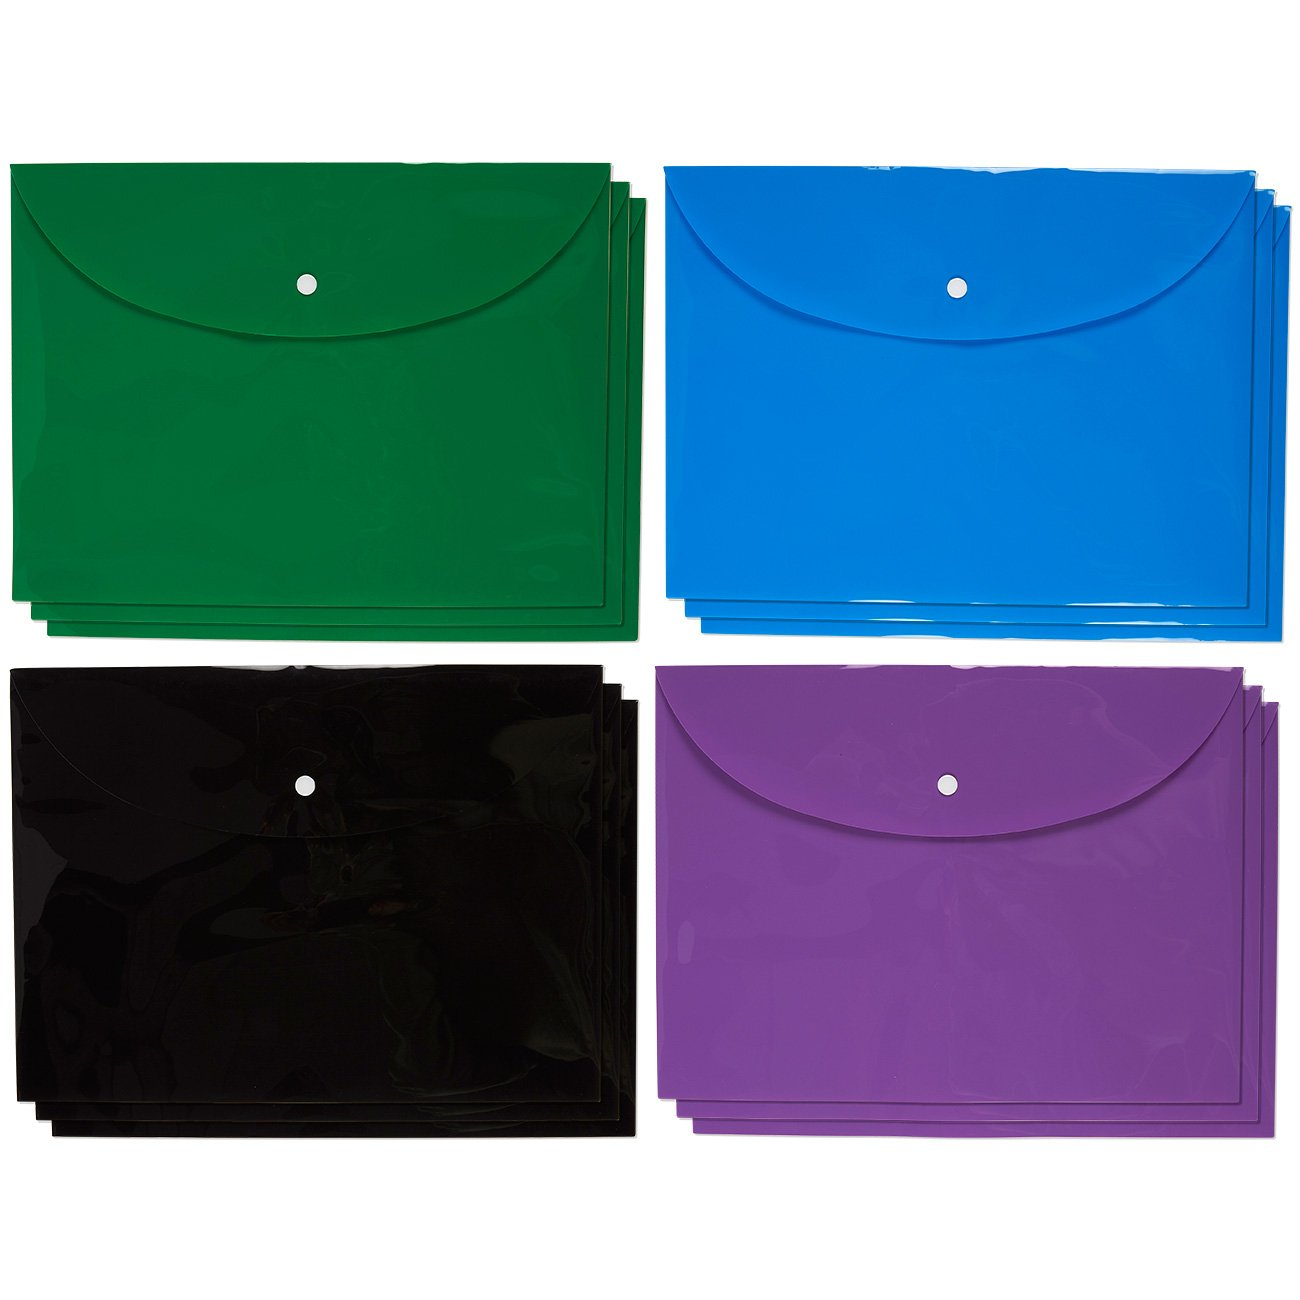 Plastic Envelopes - Pack of 12 - Document Folders with Snap Button Closures - Poly File Folders - Holds up to 85 Sheets A4 or Letter-Sized Papers, Assorted Colors